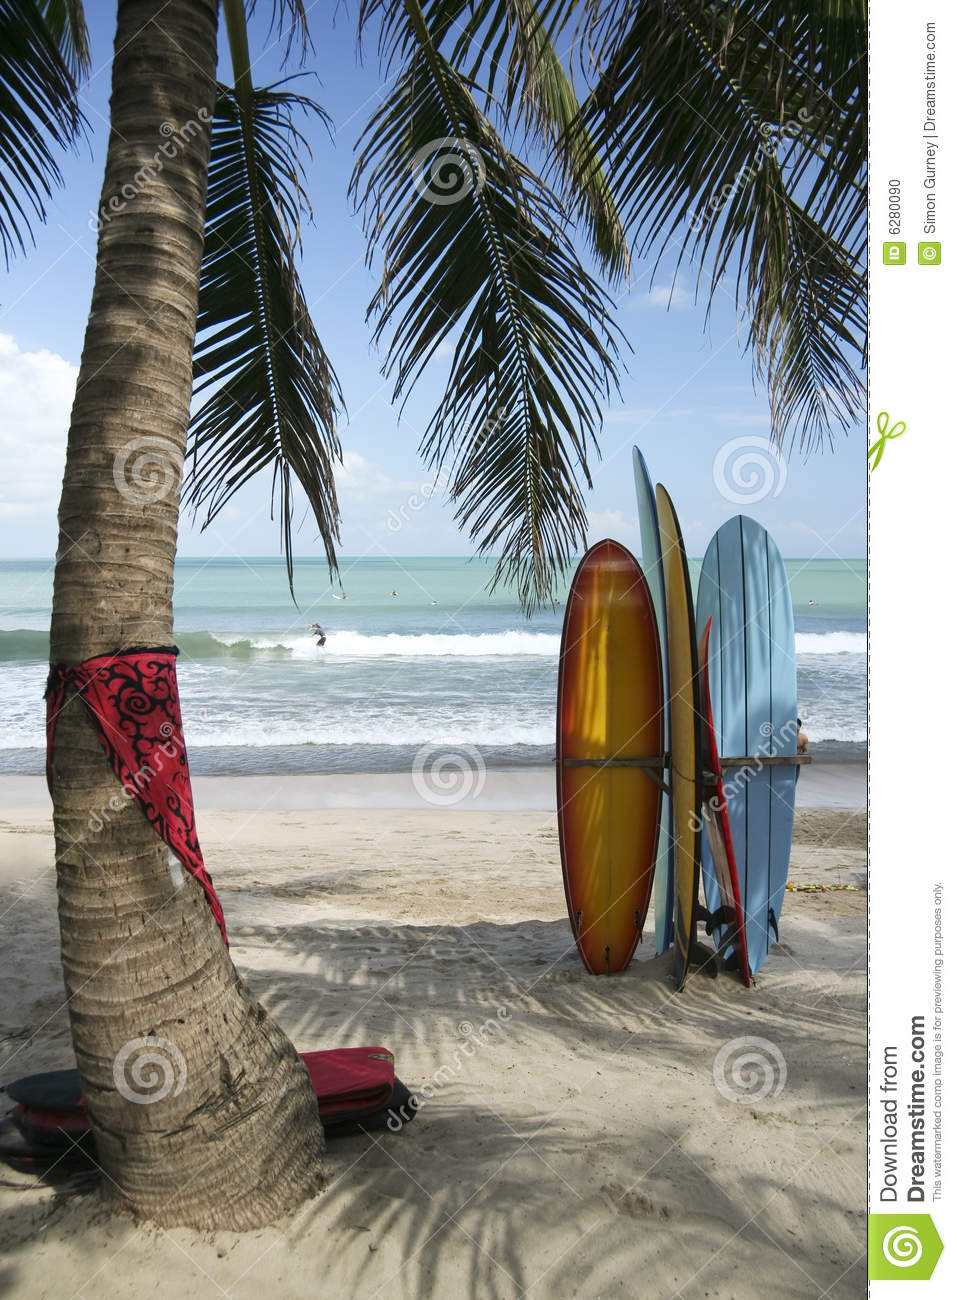 Obras Del Artista Ben Heine in addition Surf Boards Kuta Beach Bali Indonesia in addition Gearbox Stock Picture as well Beams Light Rays Black as well Delicate Red Henna Paisley Heart Vector. on circle objects